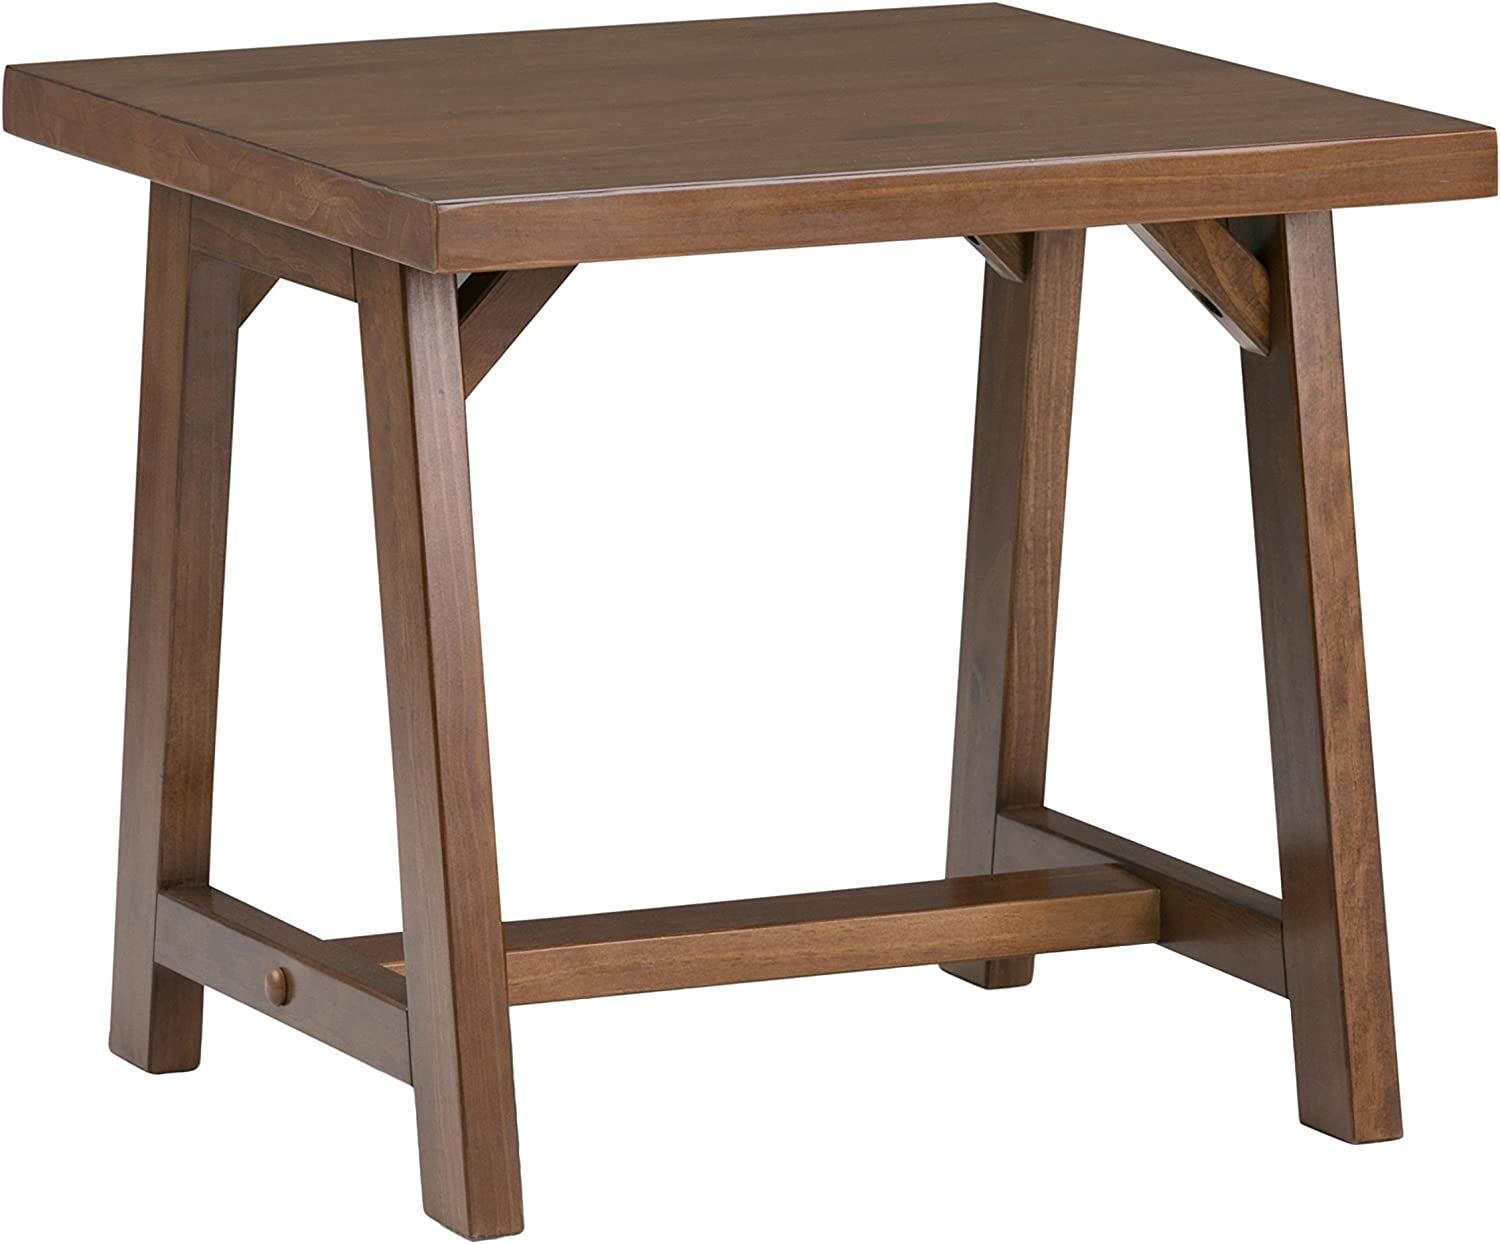 Simpli Home 3AXCSAW-02 Sawhorse Solid Wood 22 inch Wide Square Modern Industrial End Side Table in Medium Saddle Brown